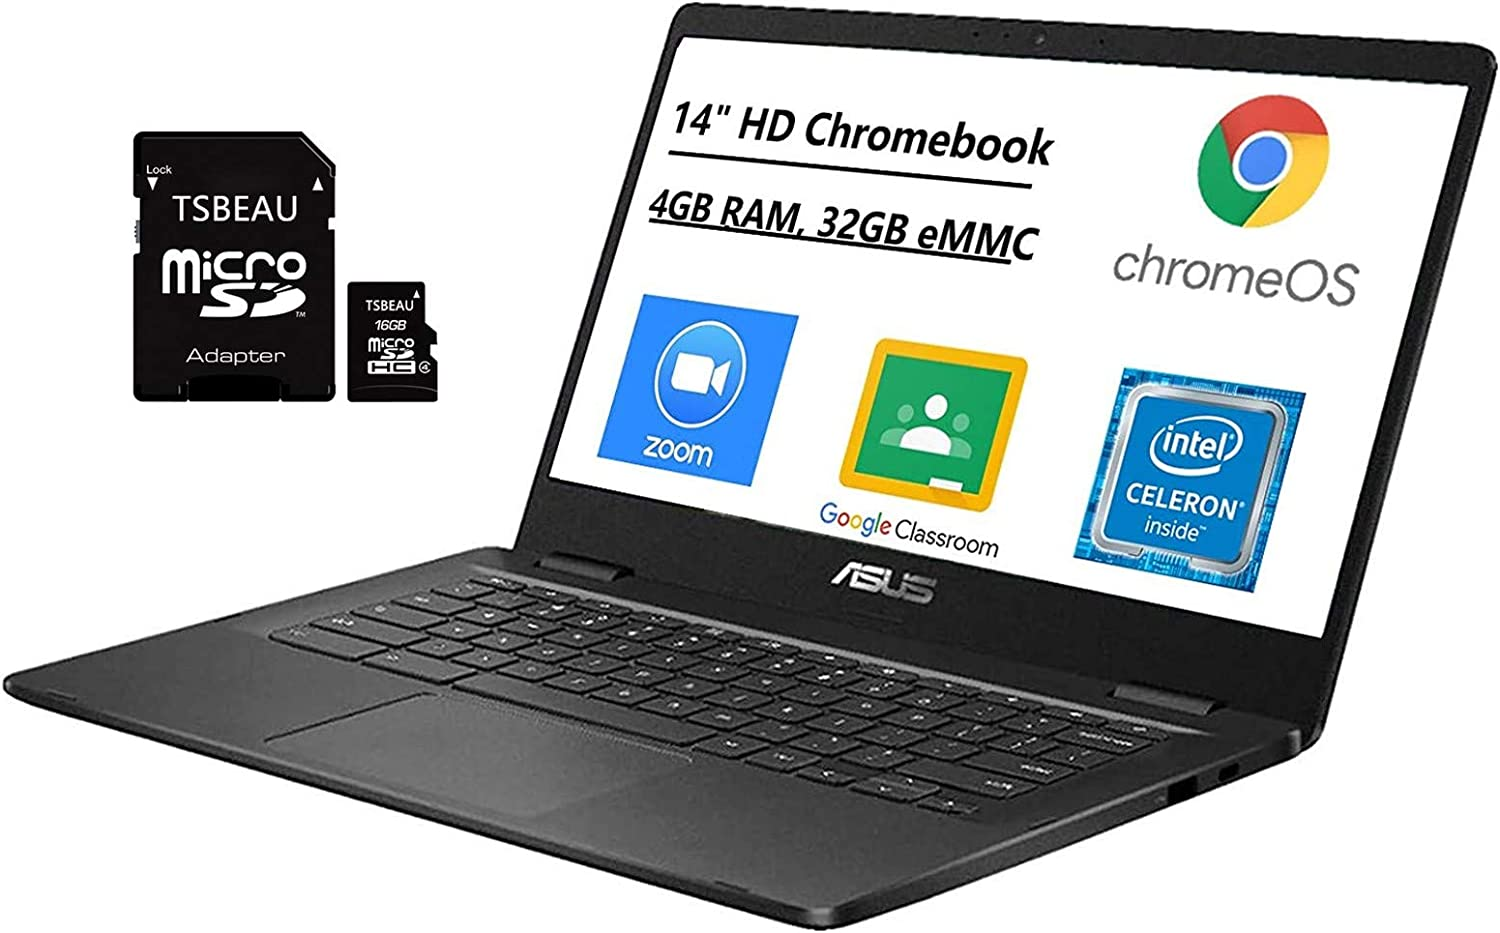 "ASUS Chromebook 14"" HD Thin & Light Laptop Computer, Intel Celeron N3350 up to 2.4GHz, 4GB LPDDR4 RAM, 32GB eMMC, Online Class, Bluetooth, Chrome OS, Bundled with TSBEAU 16GB Micro SD Card"